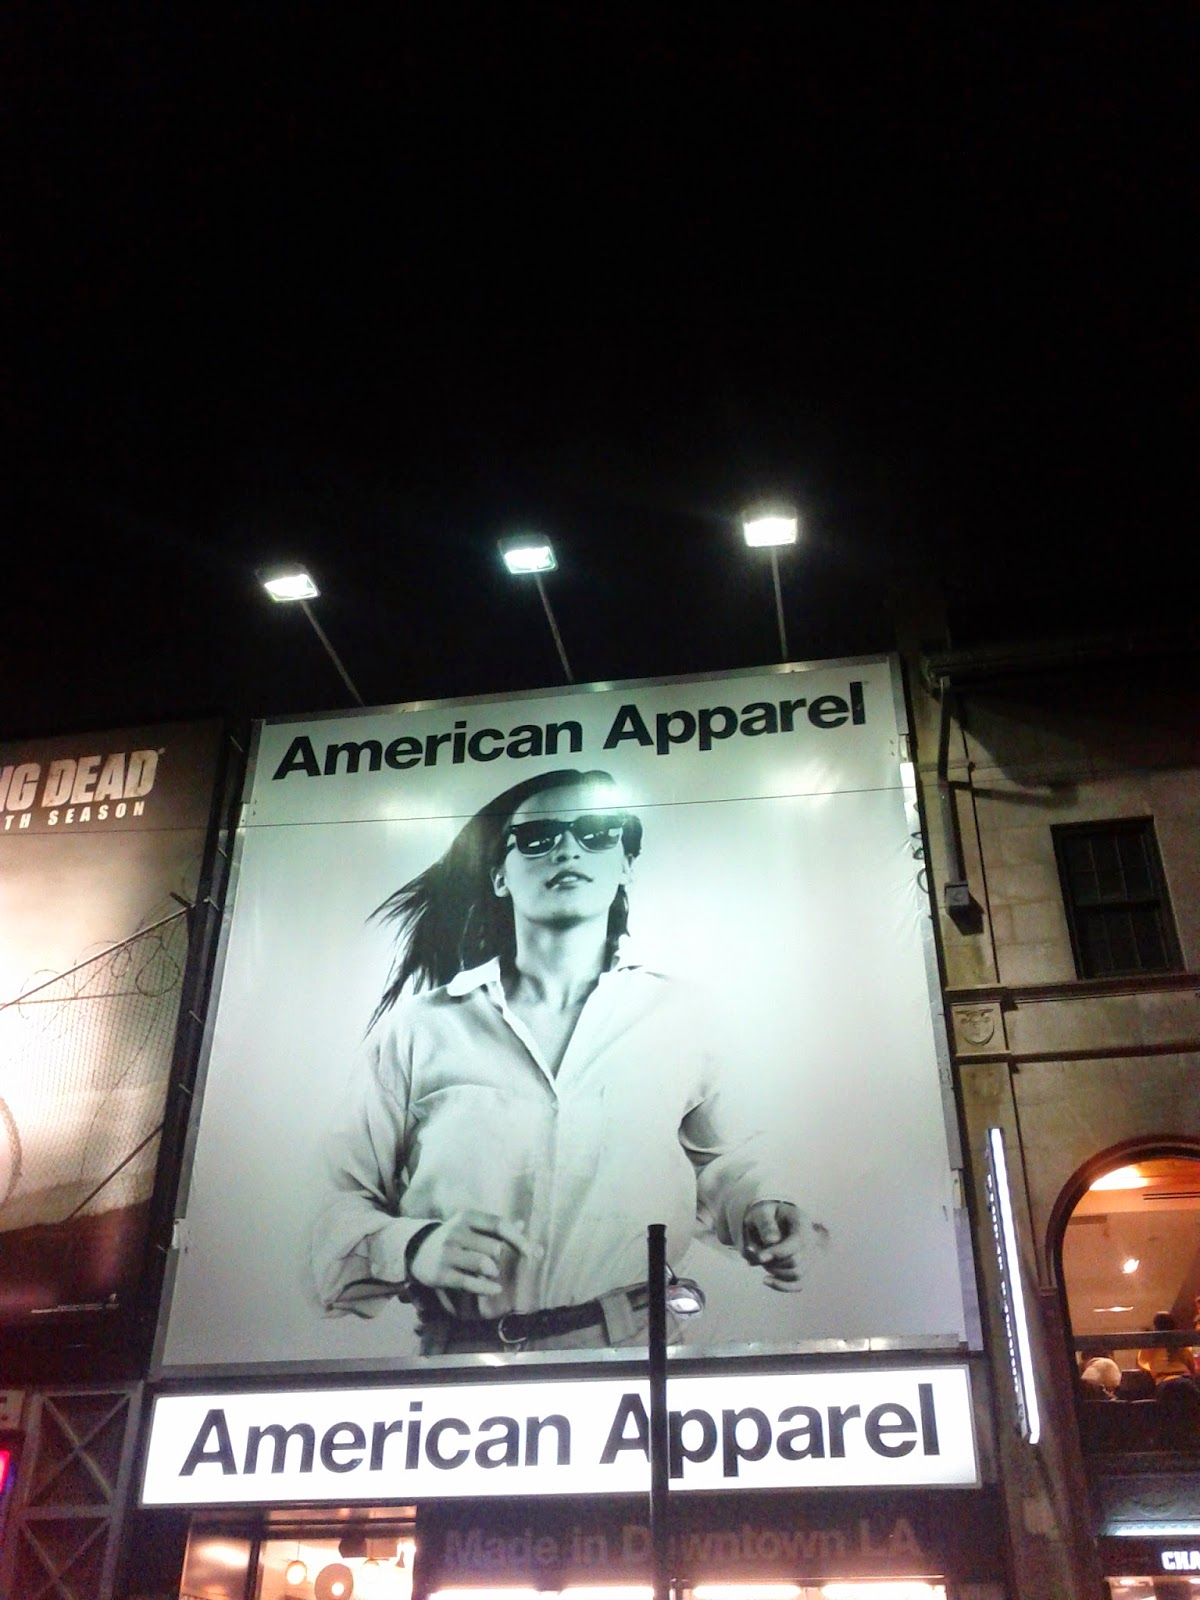 American Apparel billboard model lights